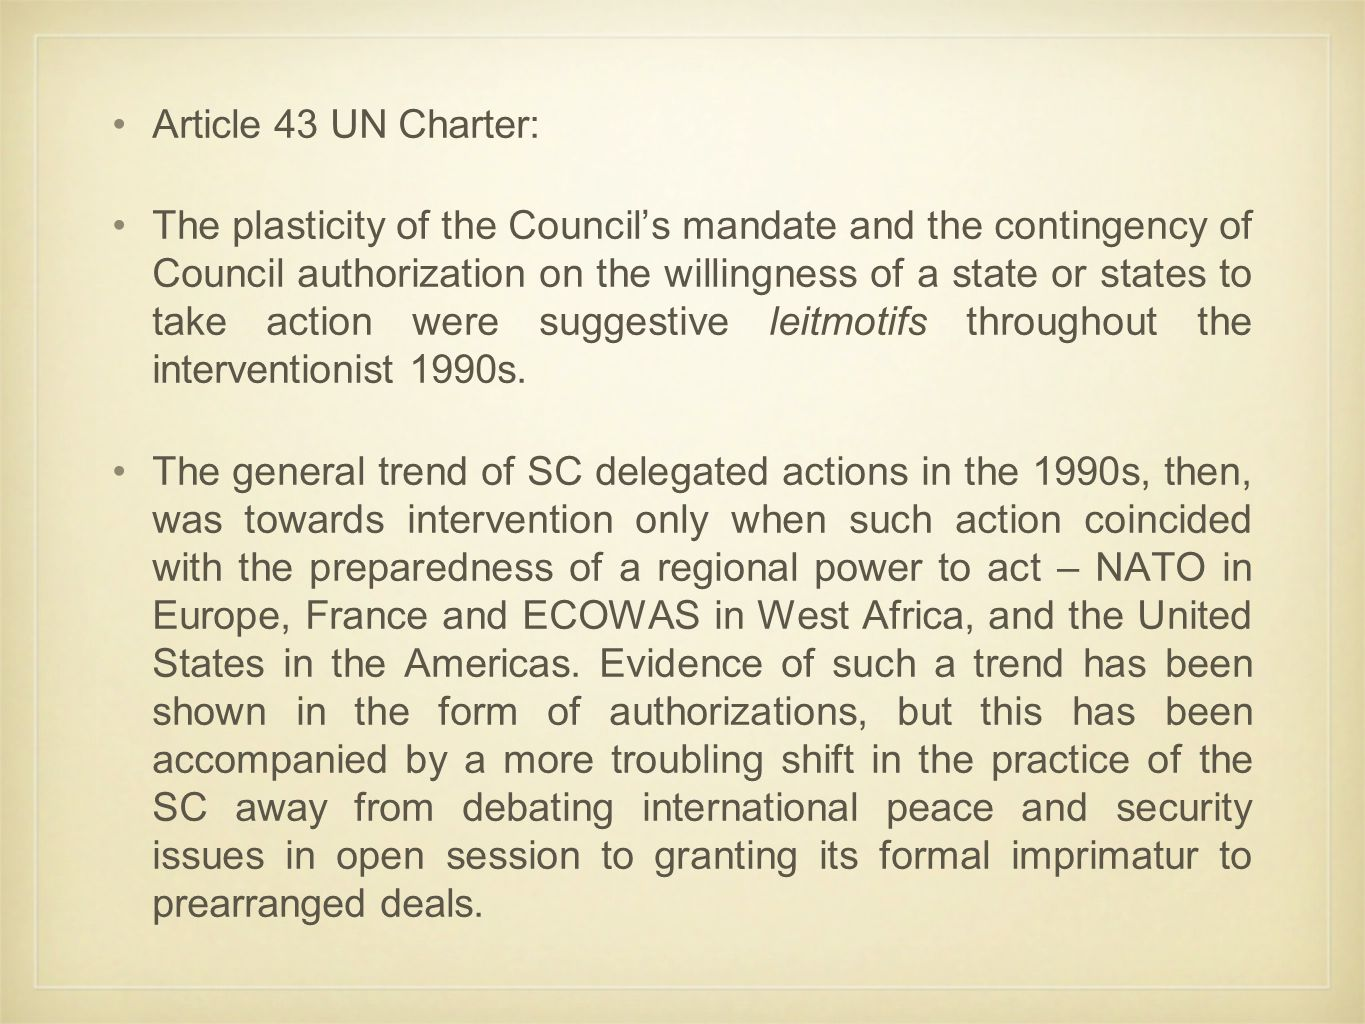 Article 43 UN Charter: The plasticity of the Council's mandate and the contingency of Council authorization on the willingness of a state or states to take action were suggestive leitmotifs throughout the interventionist 1990s.